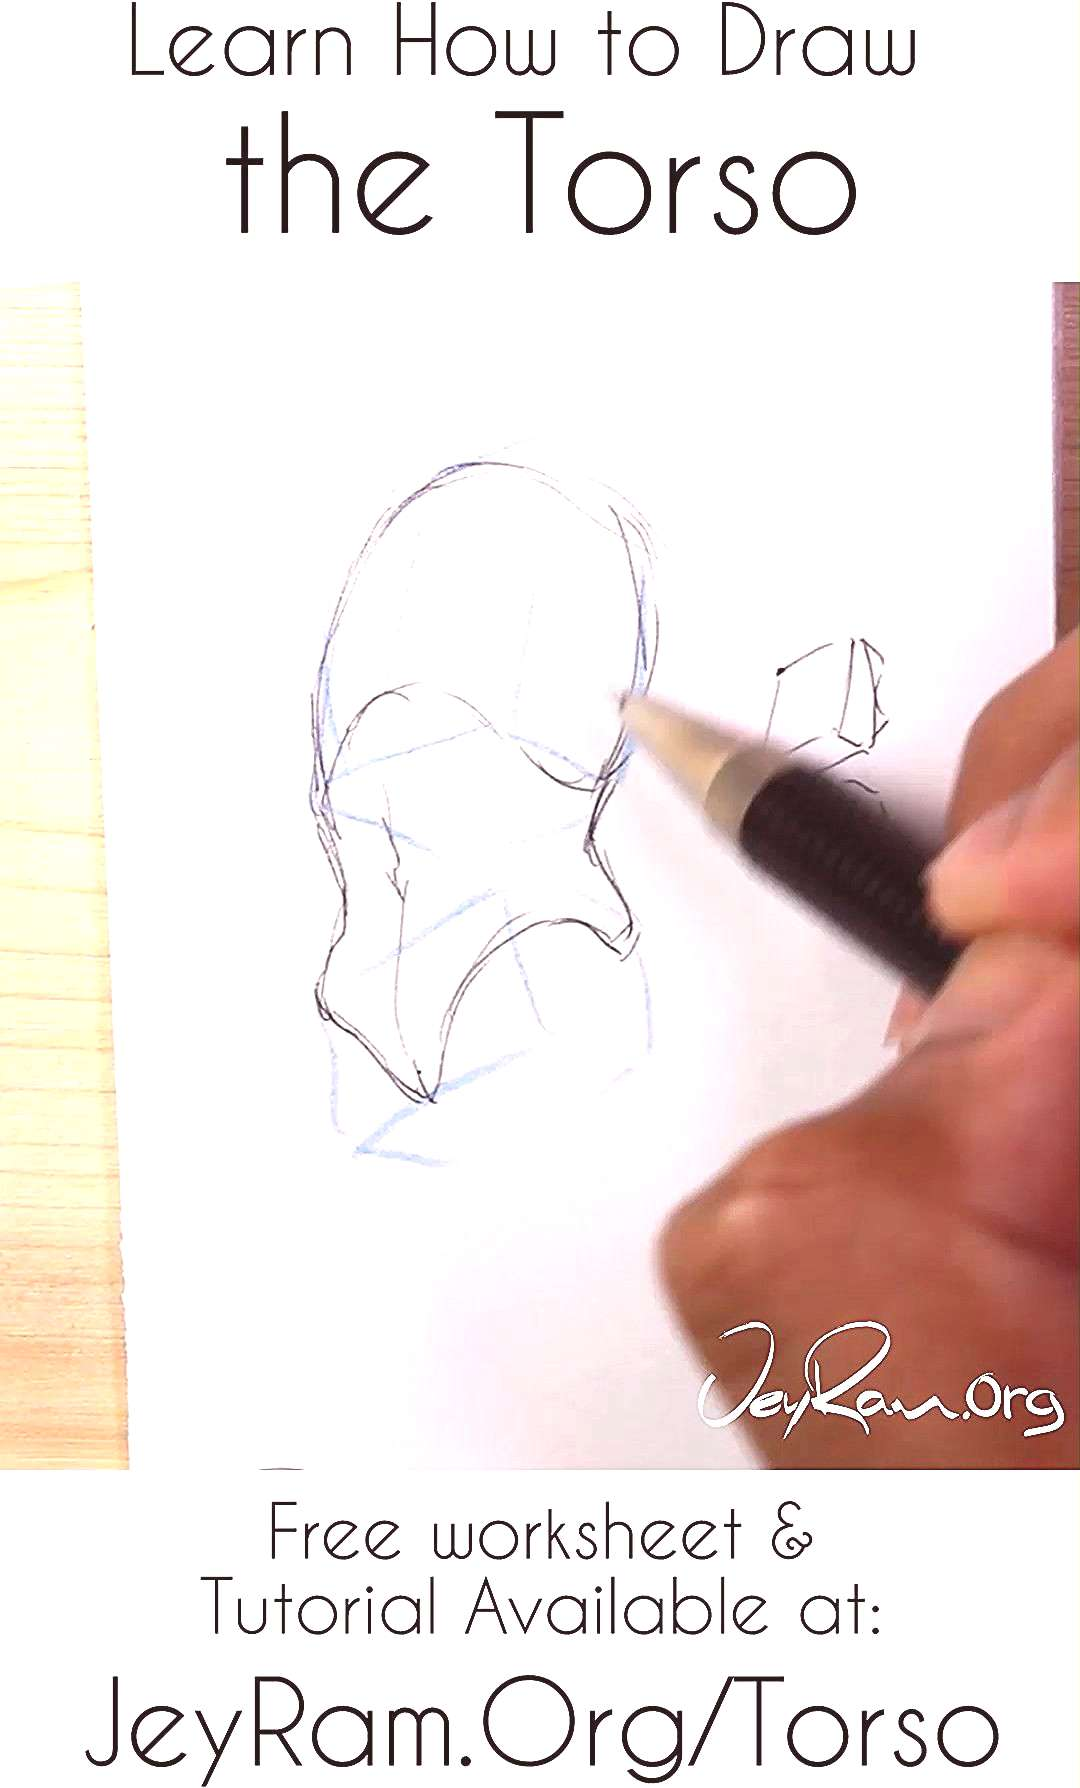 Learn how to draw the torso of the human body using the worksheet and tutorial on the site. Learnin